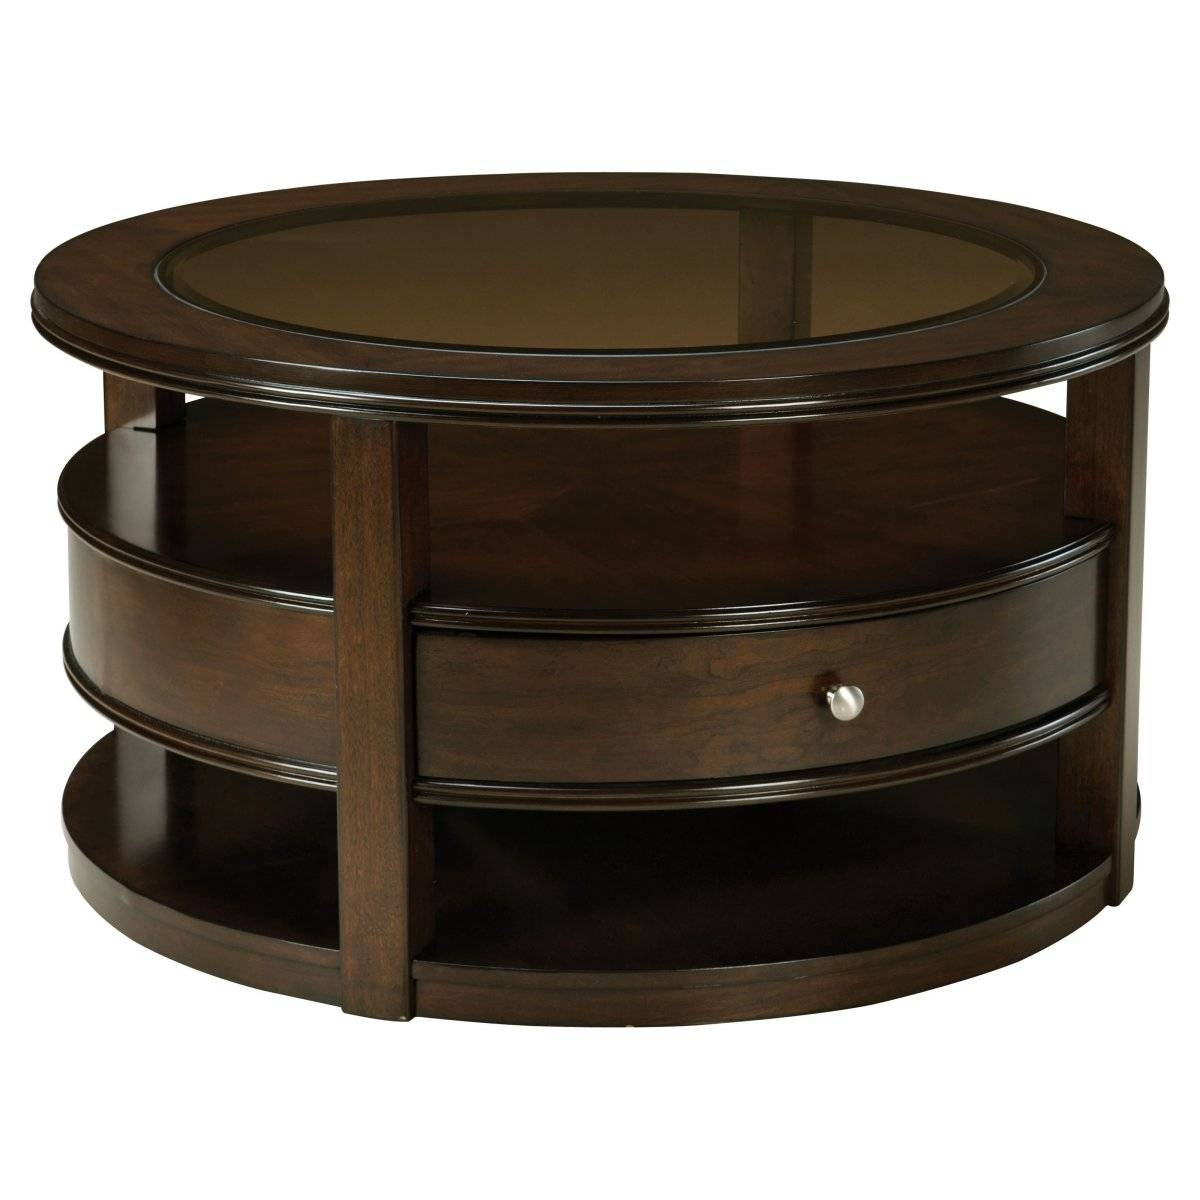 Awesome Round Coffee Tables With Storage | Homesfeed regarding Cheap Coffee Tables With Storage (Image 2 of 30)